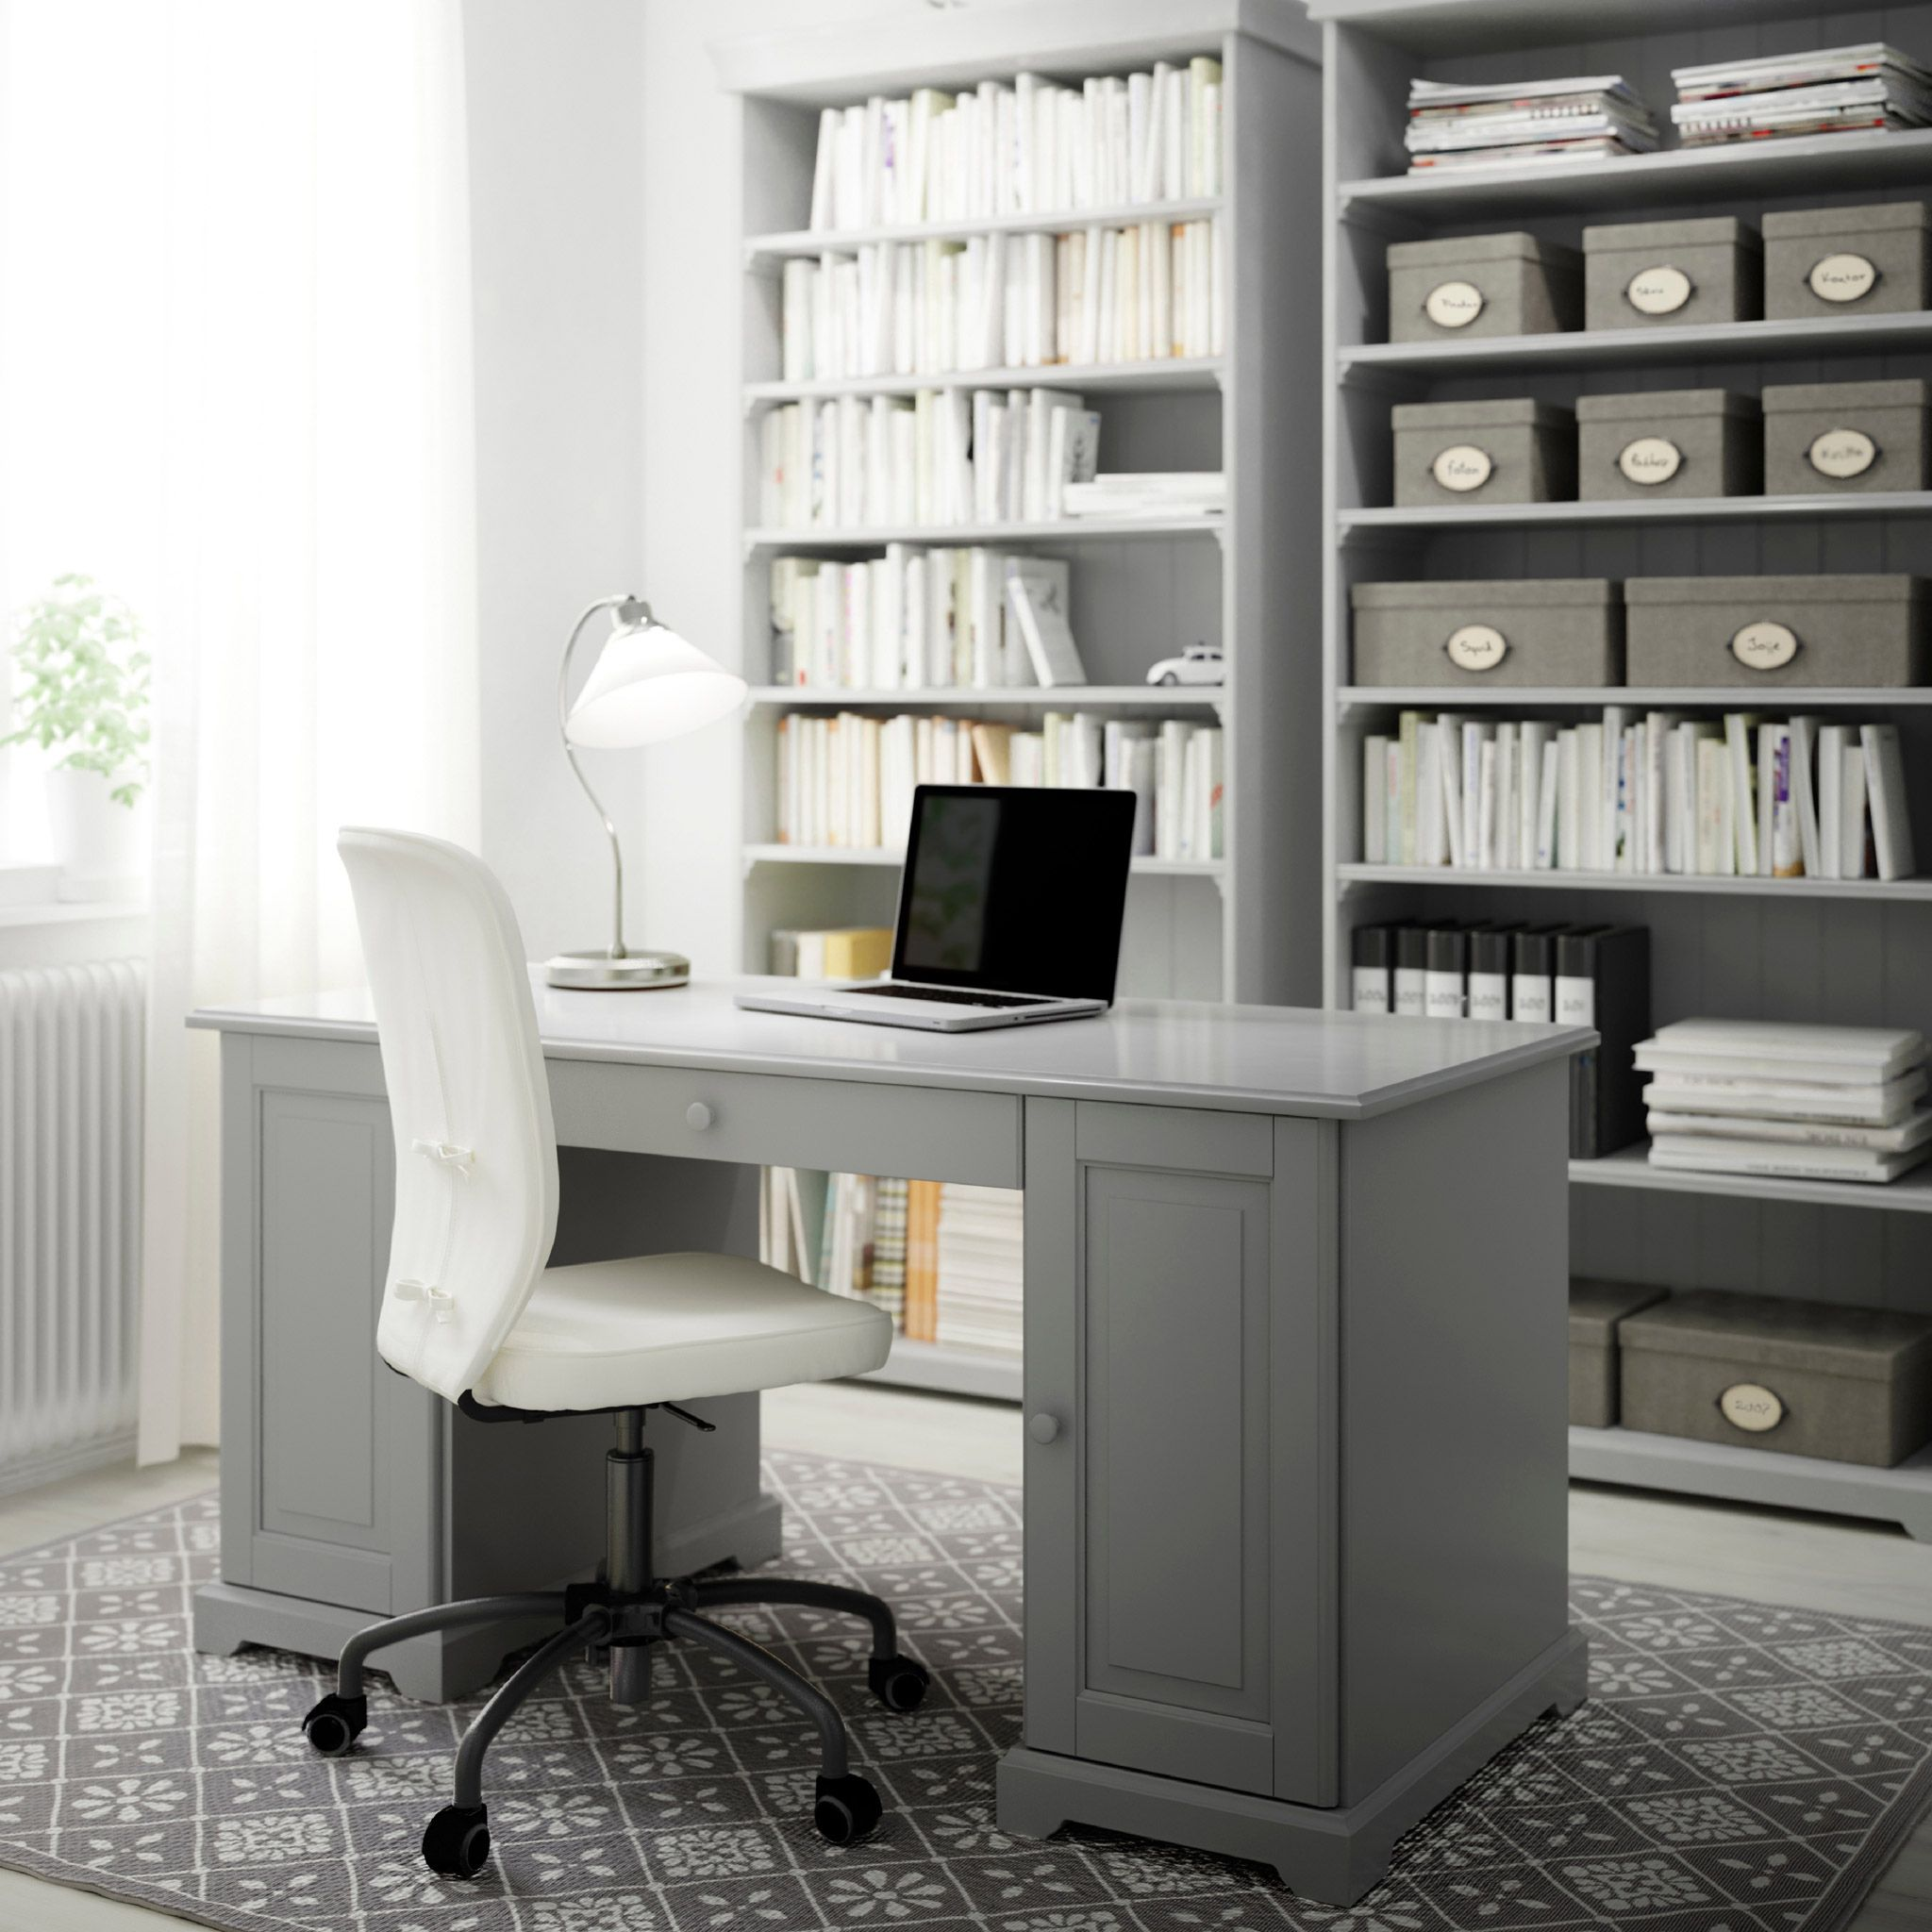 ikea home office furniture uk modern ikea home office desk modern living room sets cheap check more at http